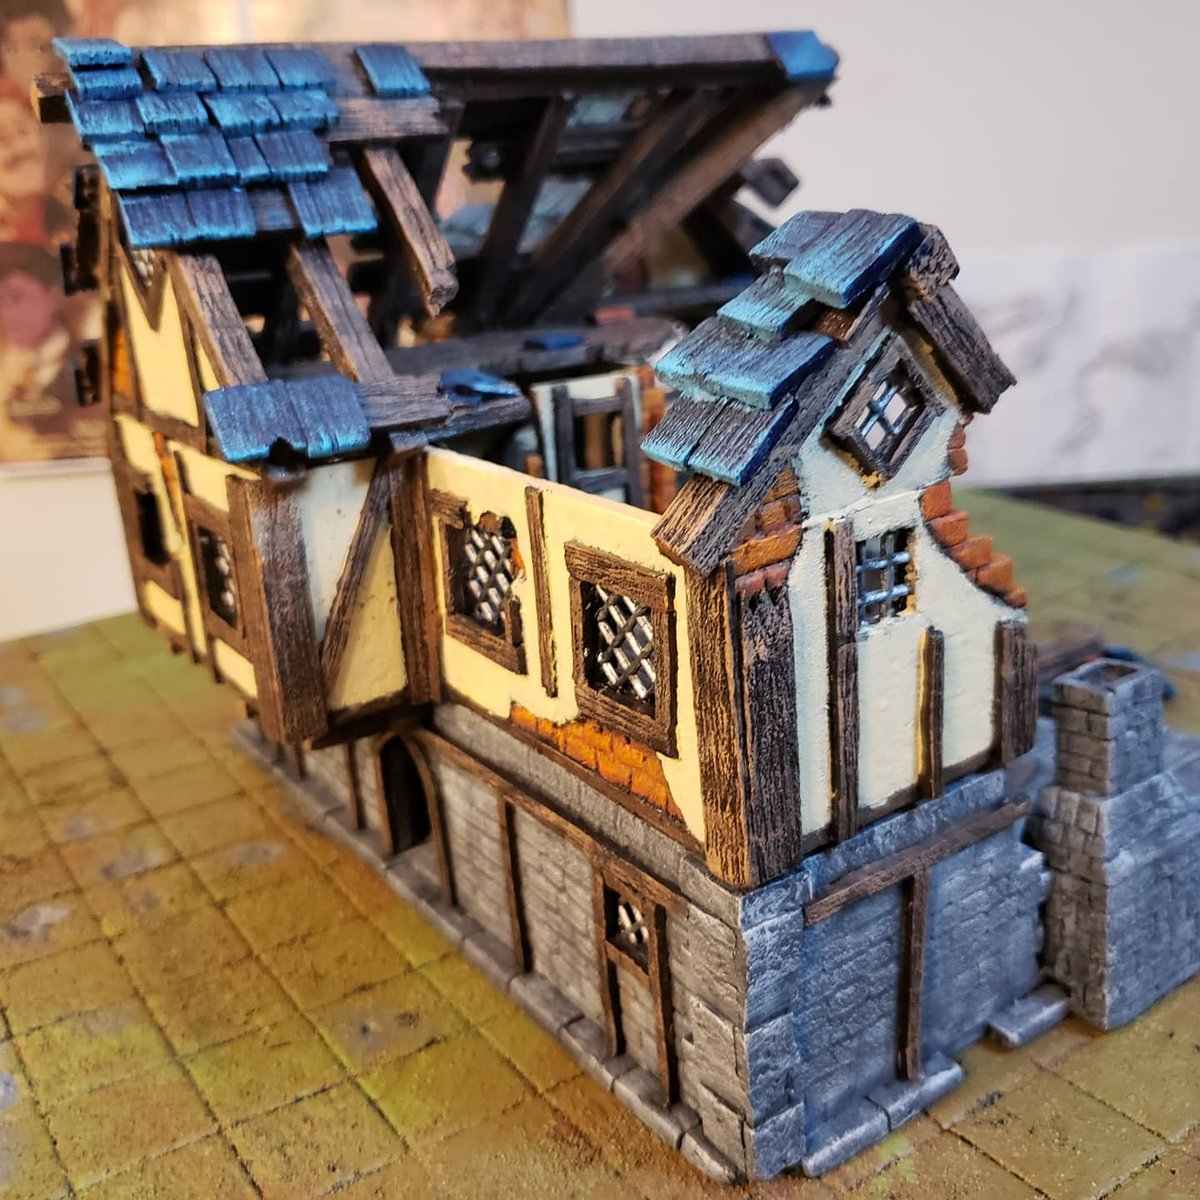 Ruined building is finished!  #diceanddudes #davidstilesandterrain #handmadeterrain #ttrpg #paintedminis #dnd5e #dnd #homebrew #quarantinelife https://t.co/SeE8wGYLOf